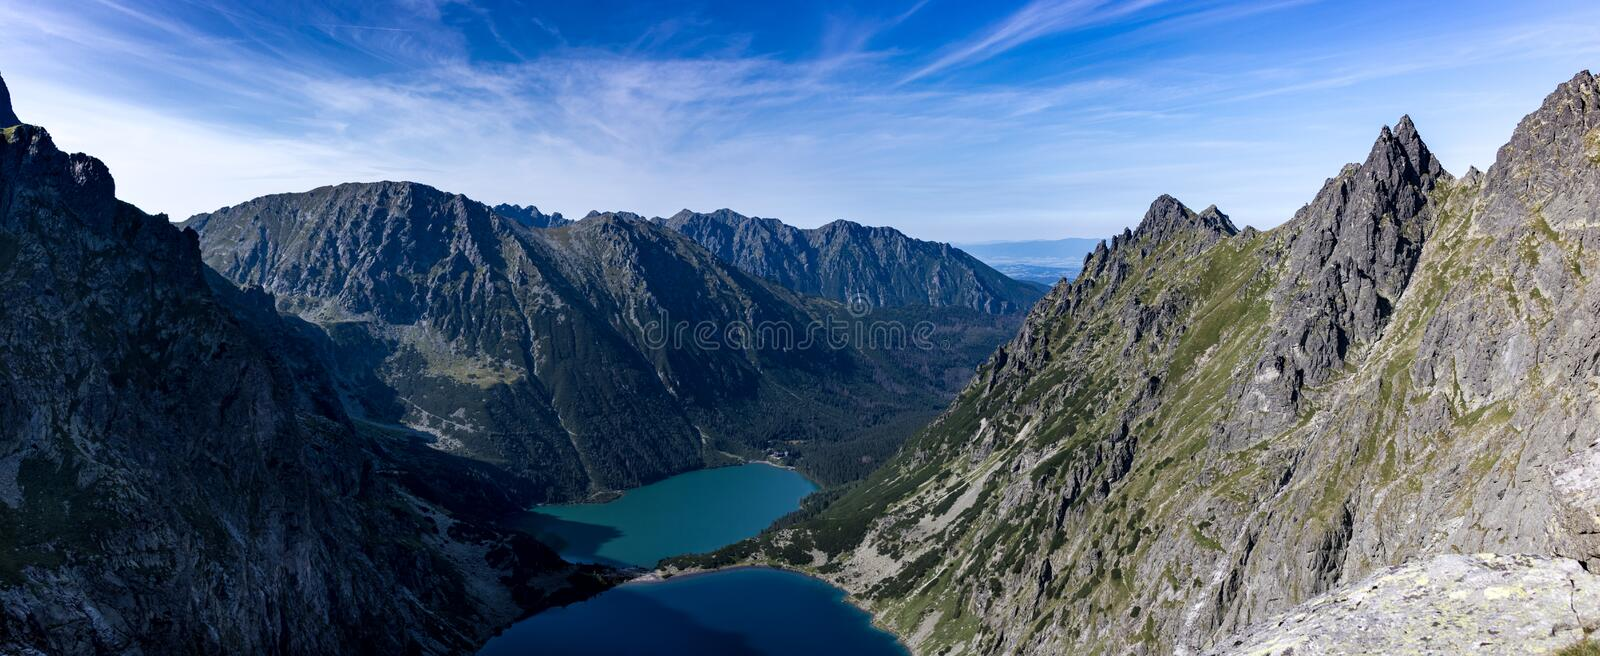 Montagnes de Tatra en Pologne en Europe photo stock